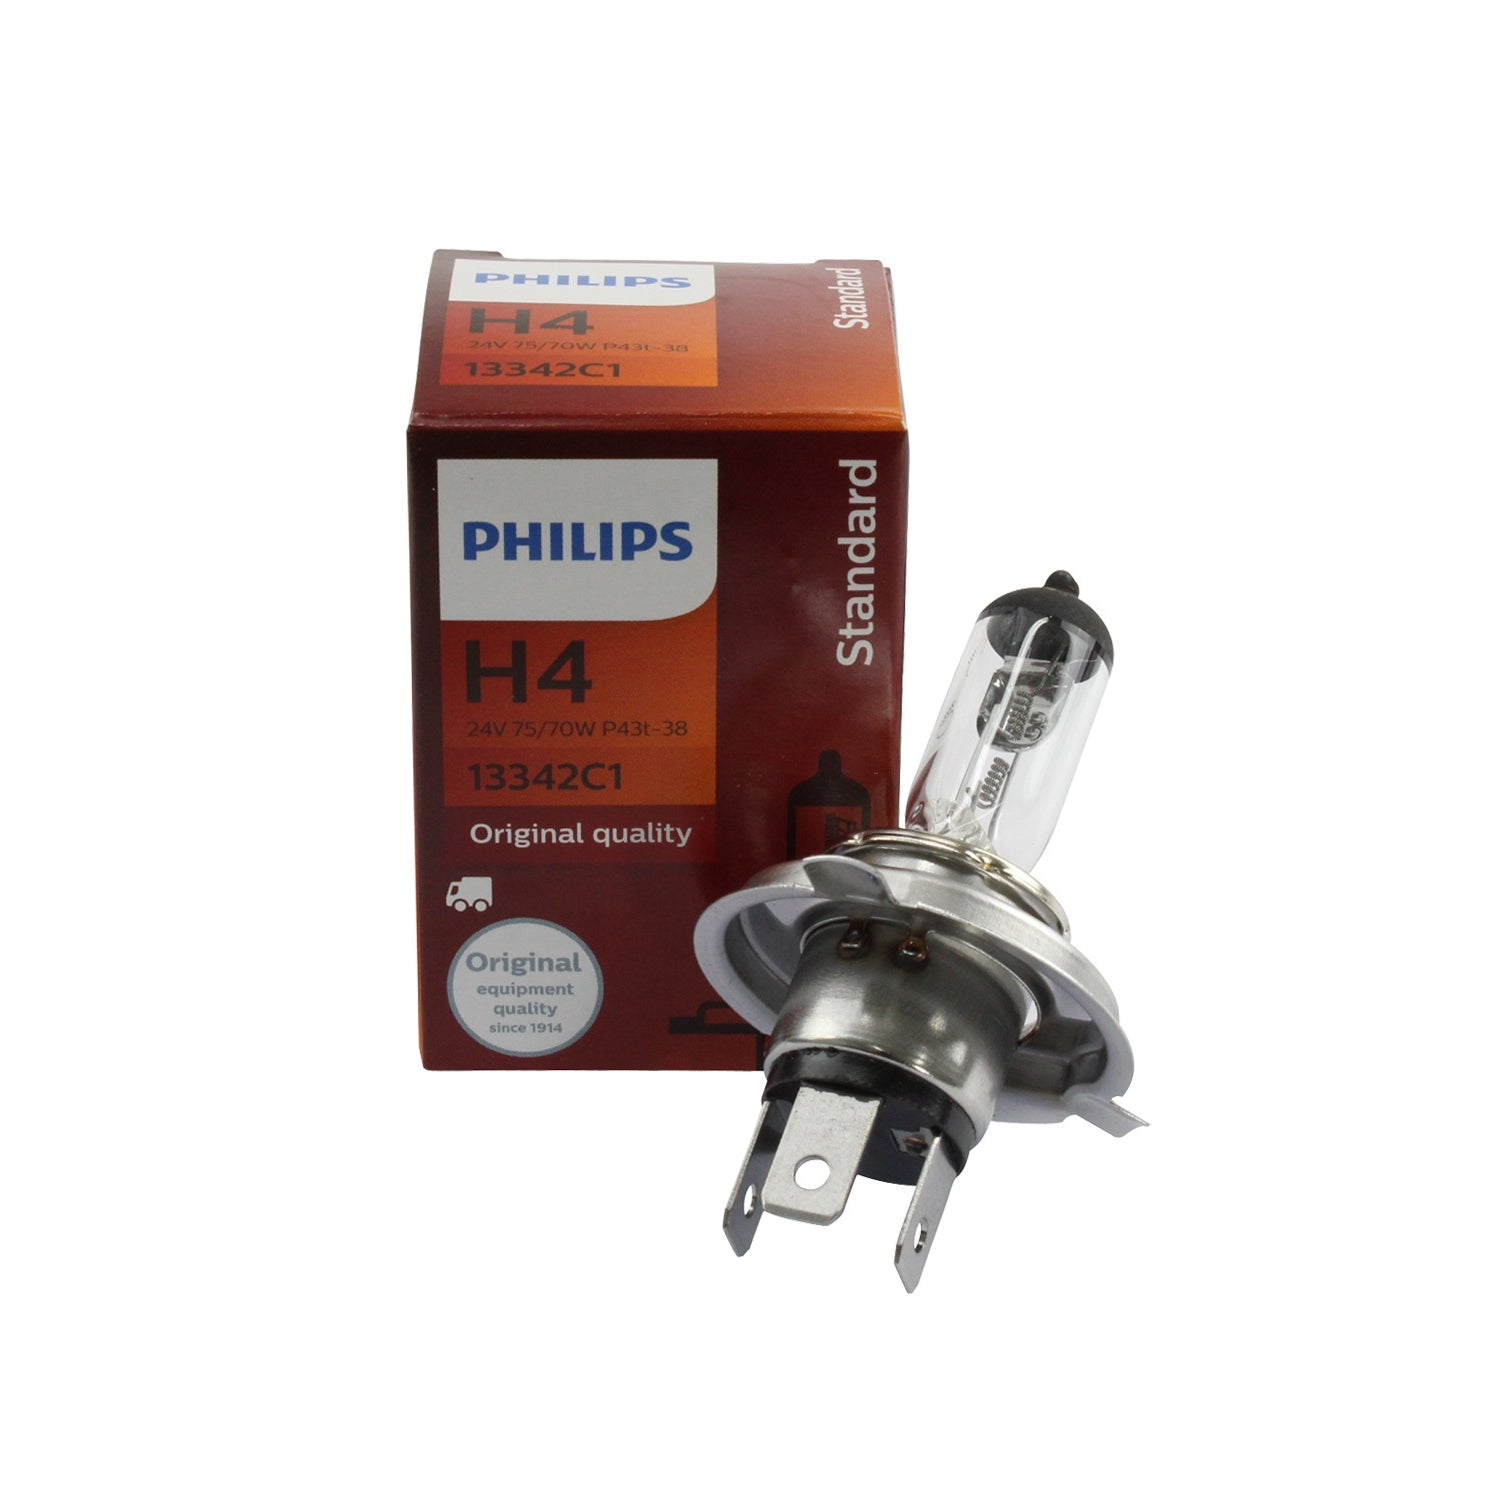 13342 Philips Halogen Globe/H4 24V 75/70W ST | Globes | Perth Pro Auto electric parts